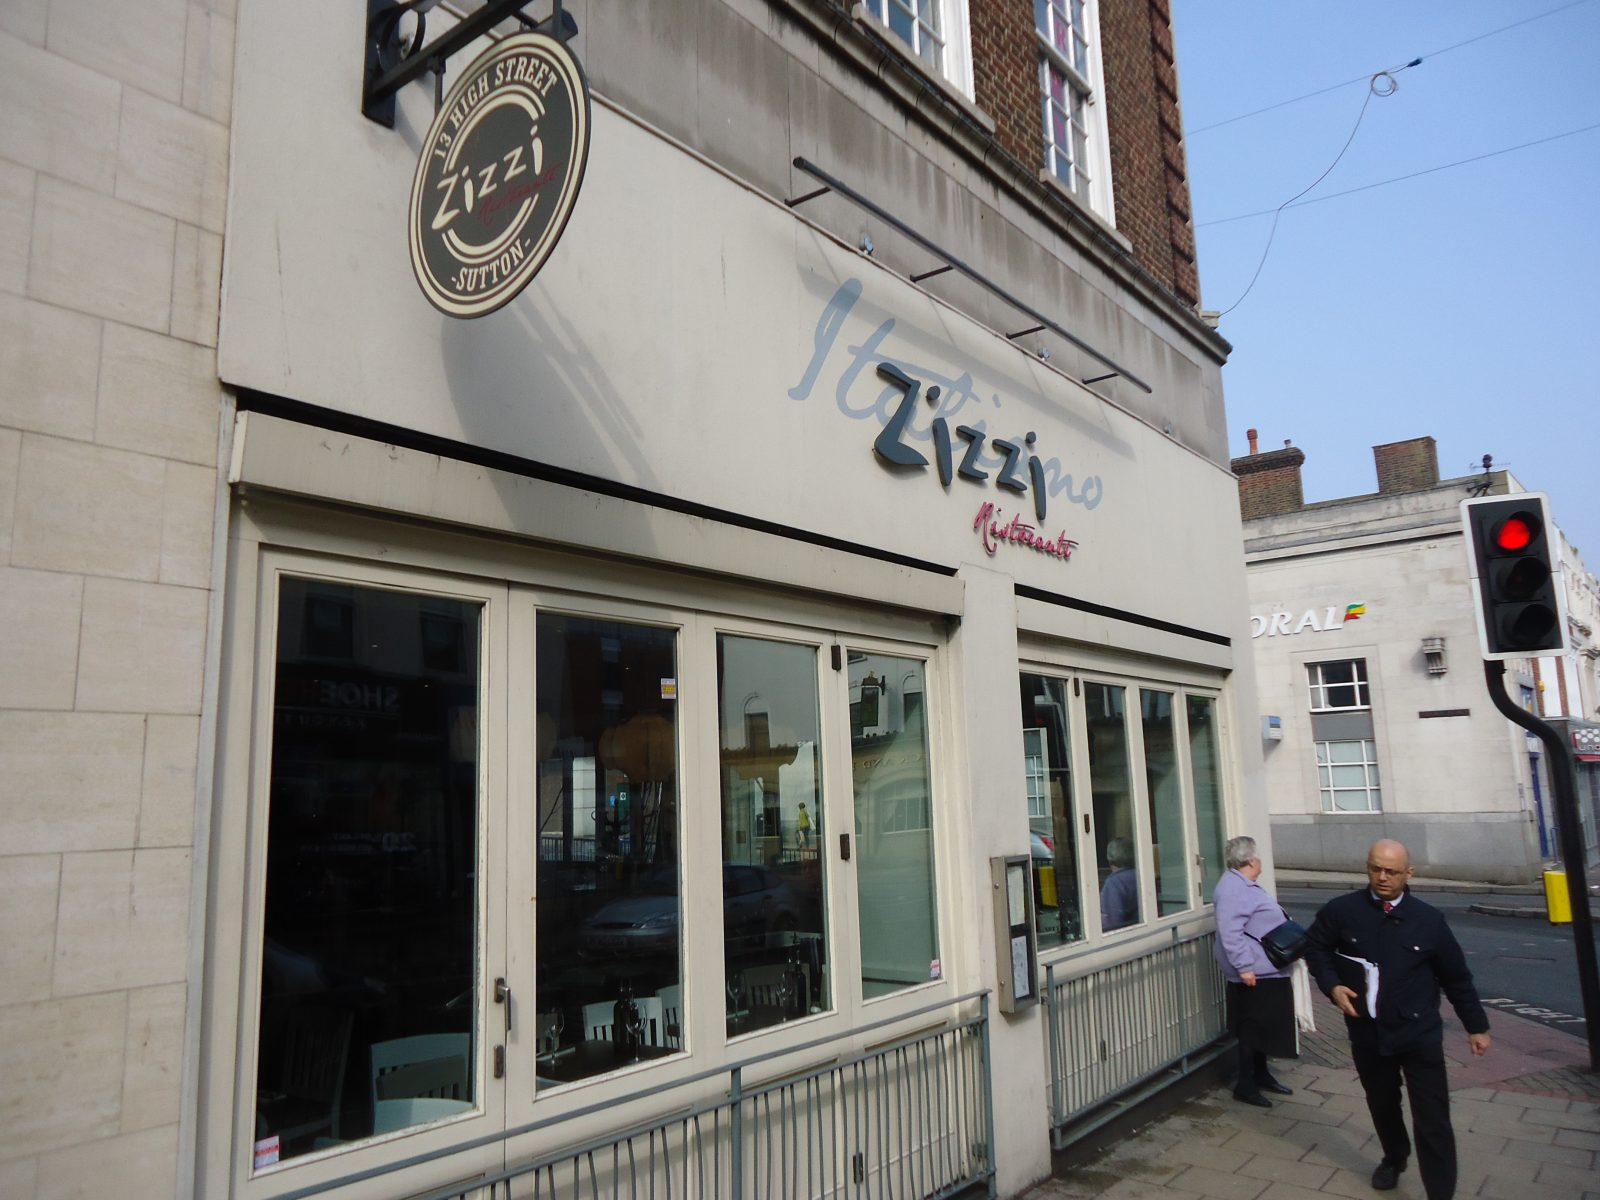 Zizzi: Customer Services Contact Number - 0843 596 3490